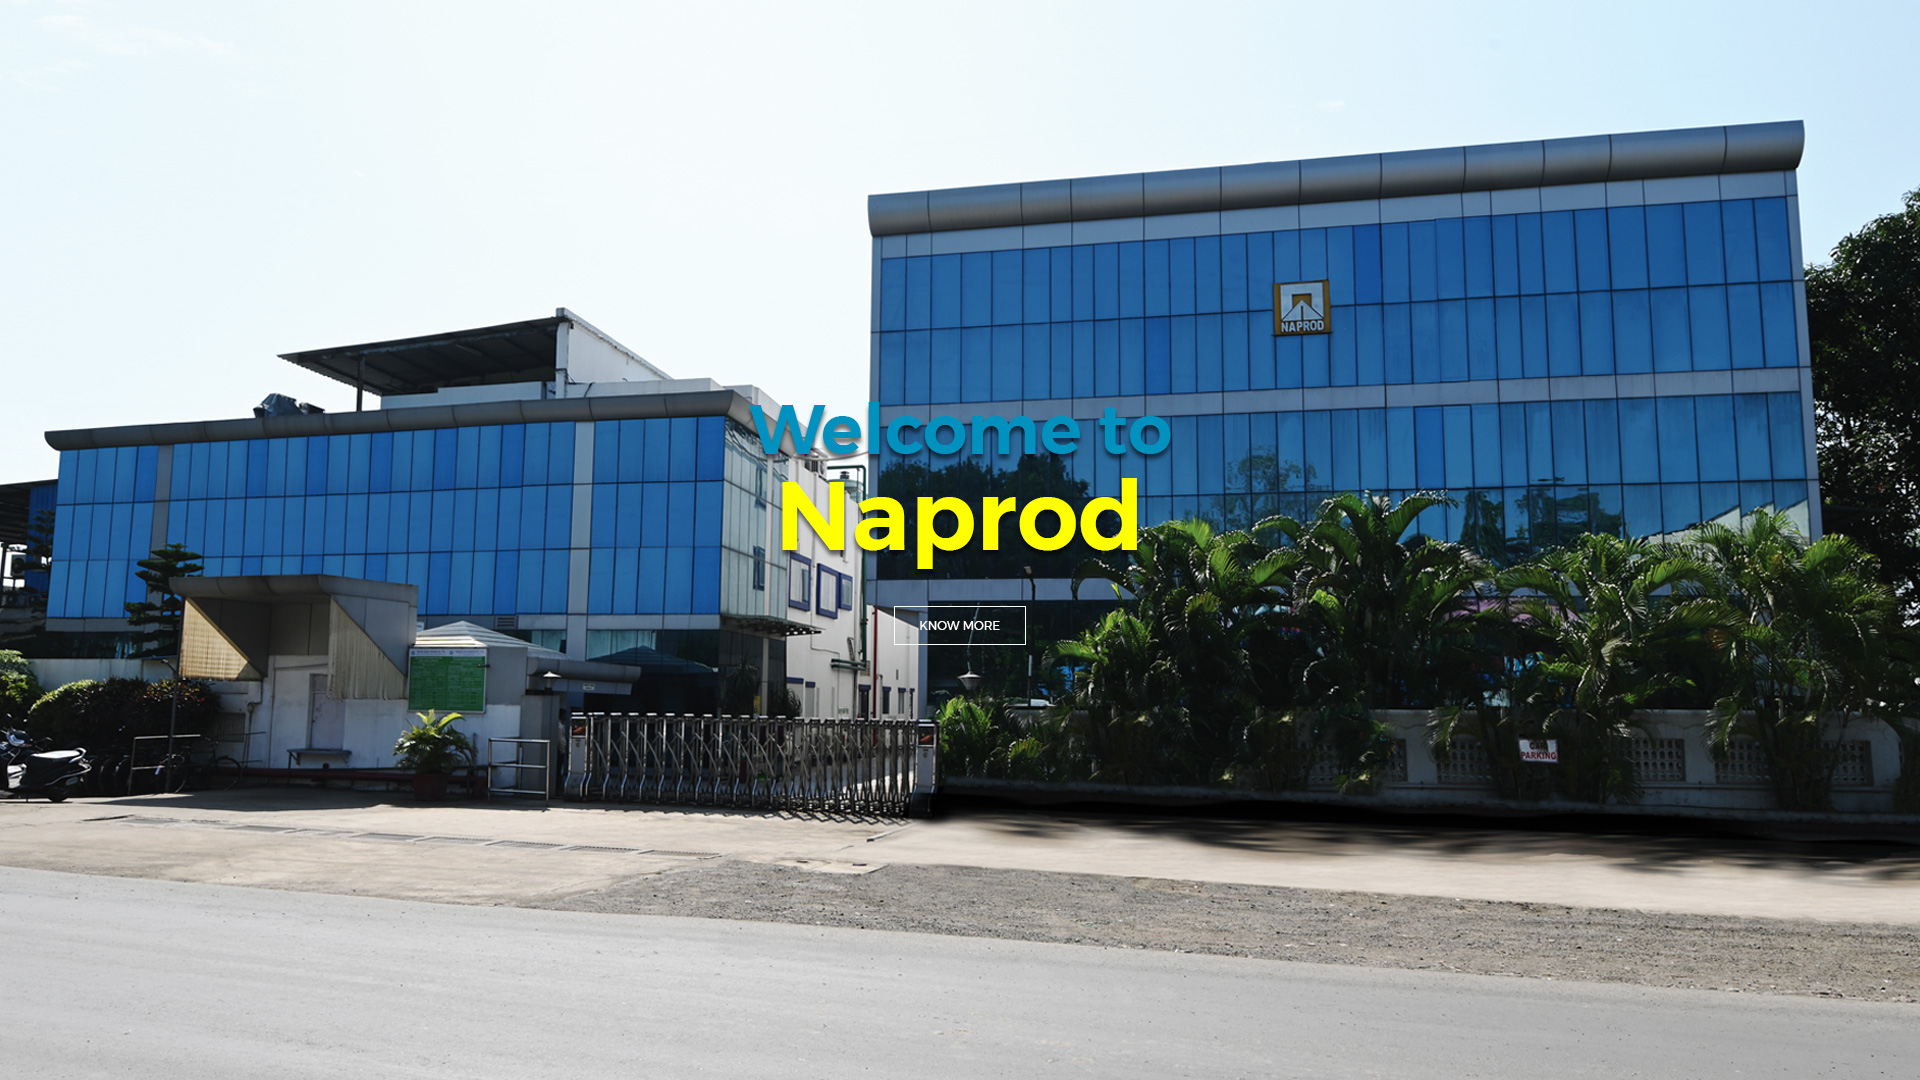 Welcome to Naprod